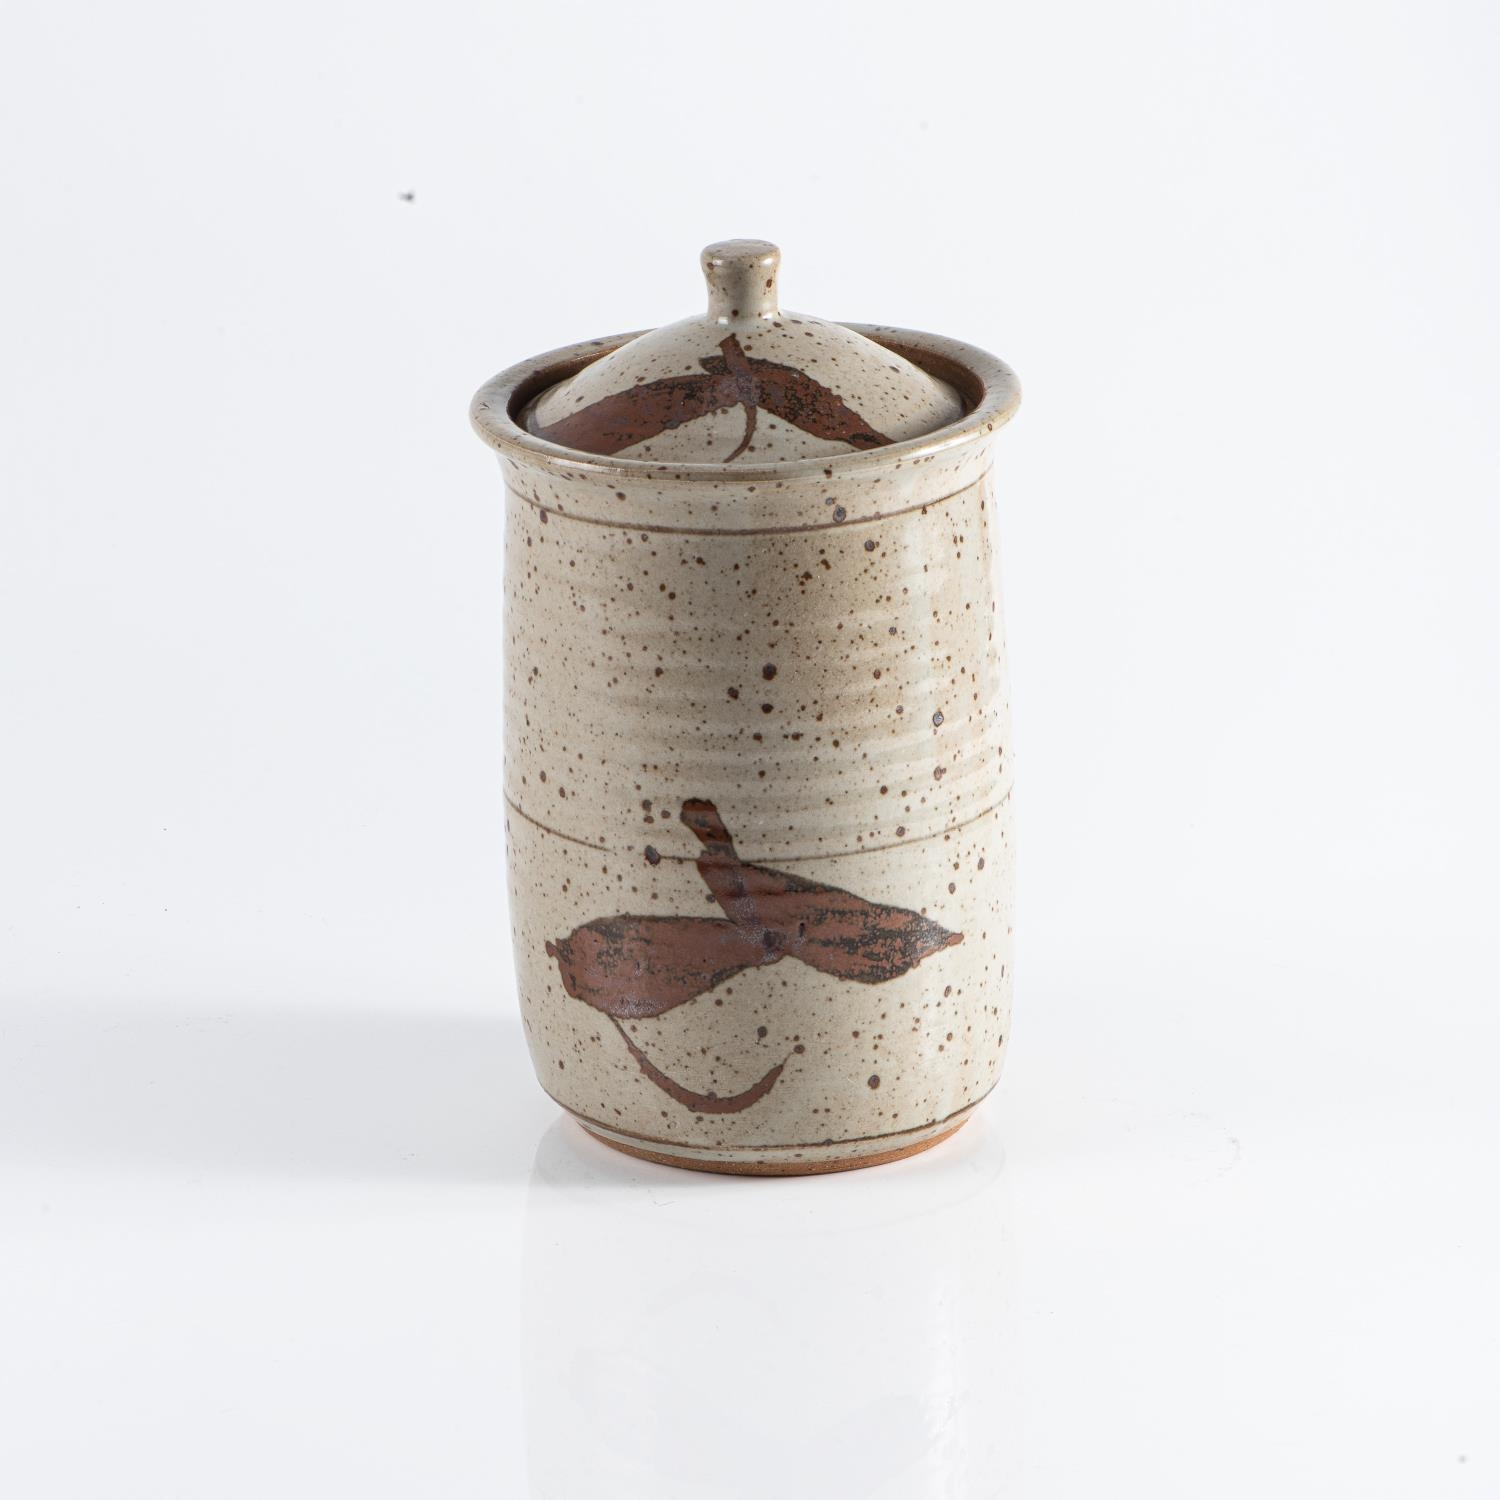 TIM MORRIS (SOUTH AFRICAN 1941-1990): A TALL STONEWARE STORAGE JAR AND COVER